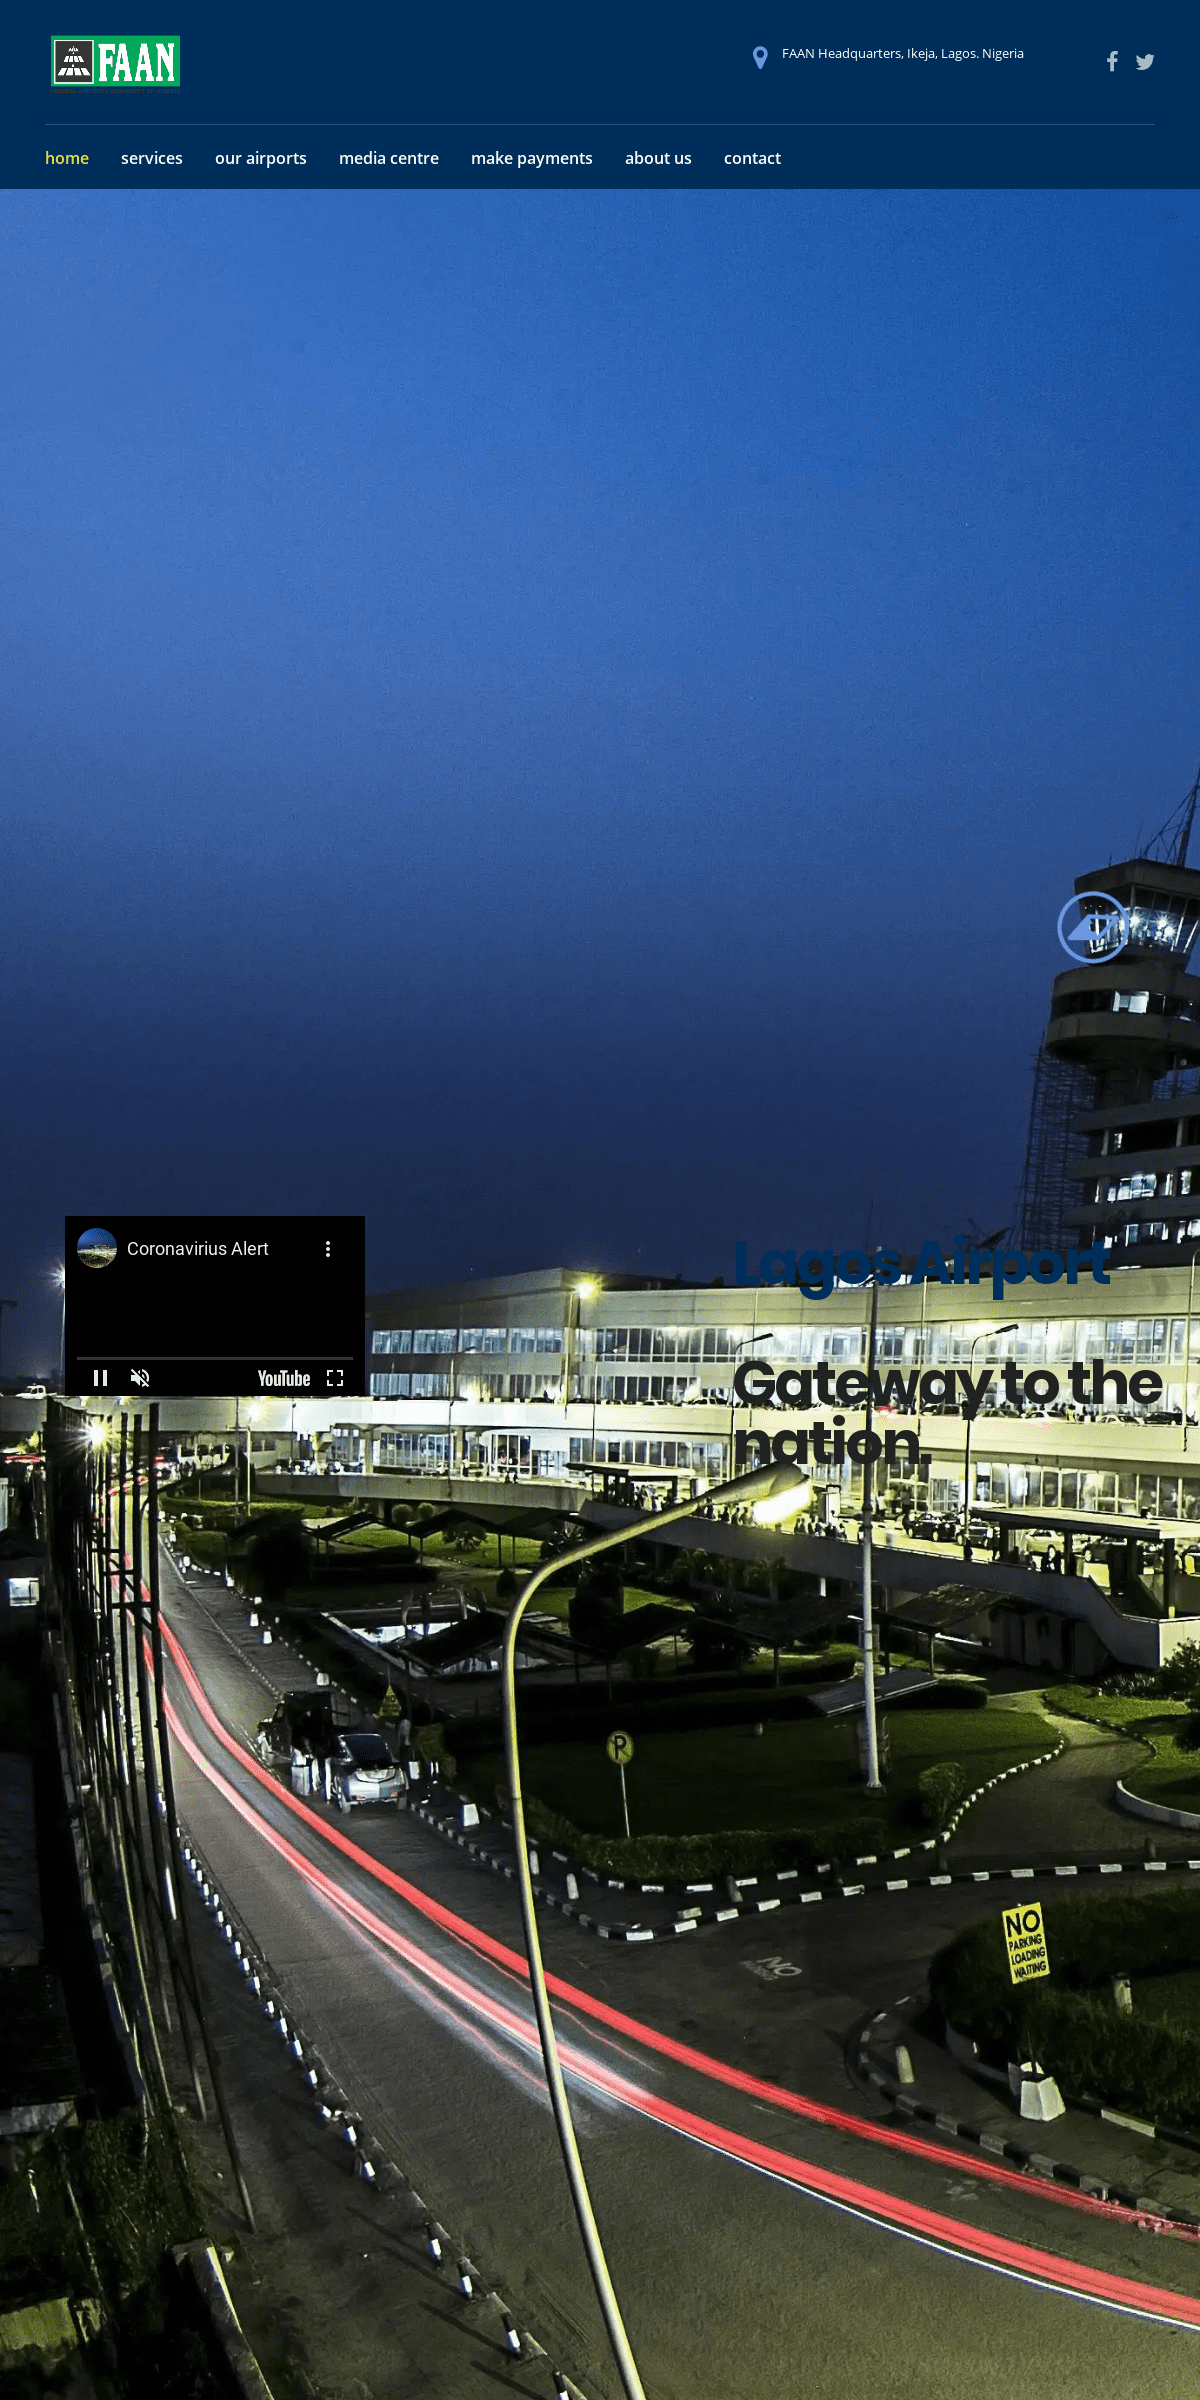 Federal Airports Authority of Nigeria – Federal Airports Authority of Nigeria